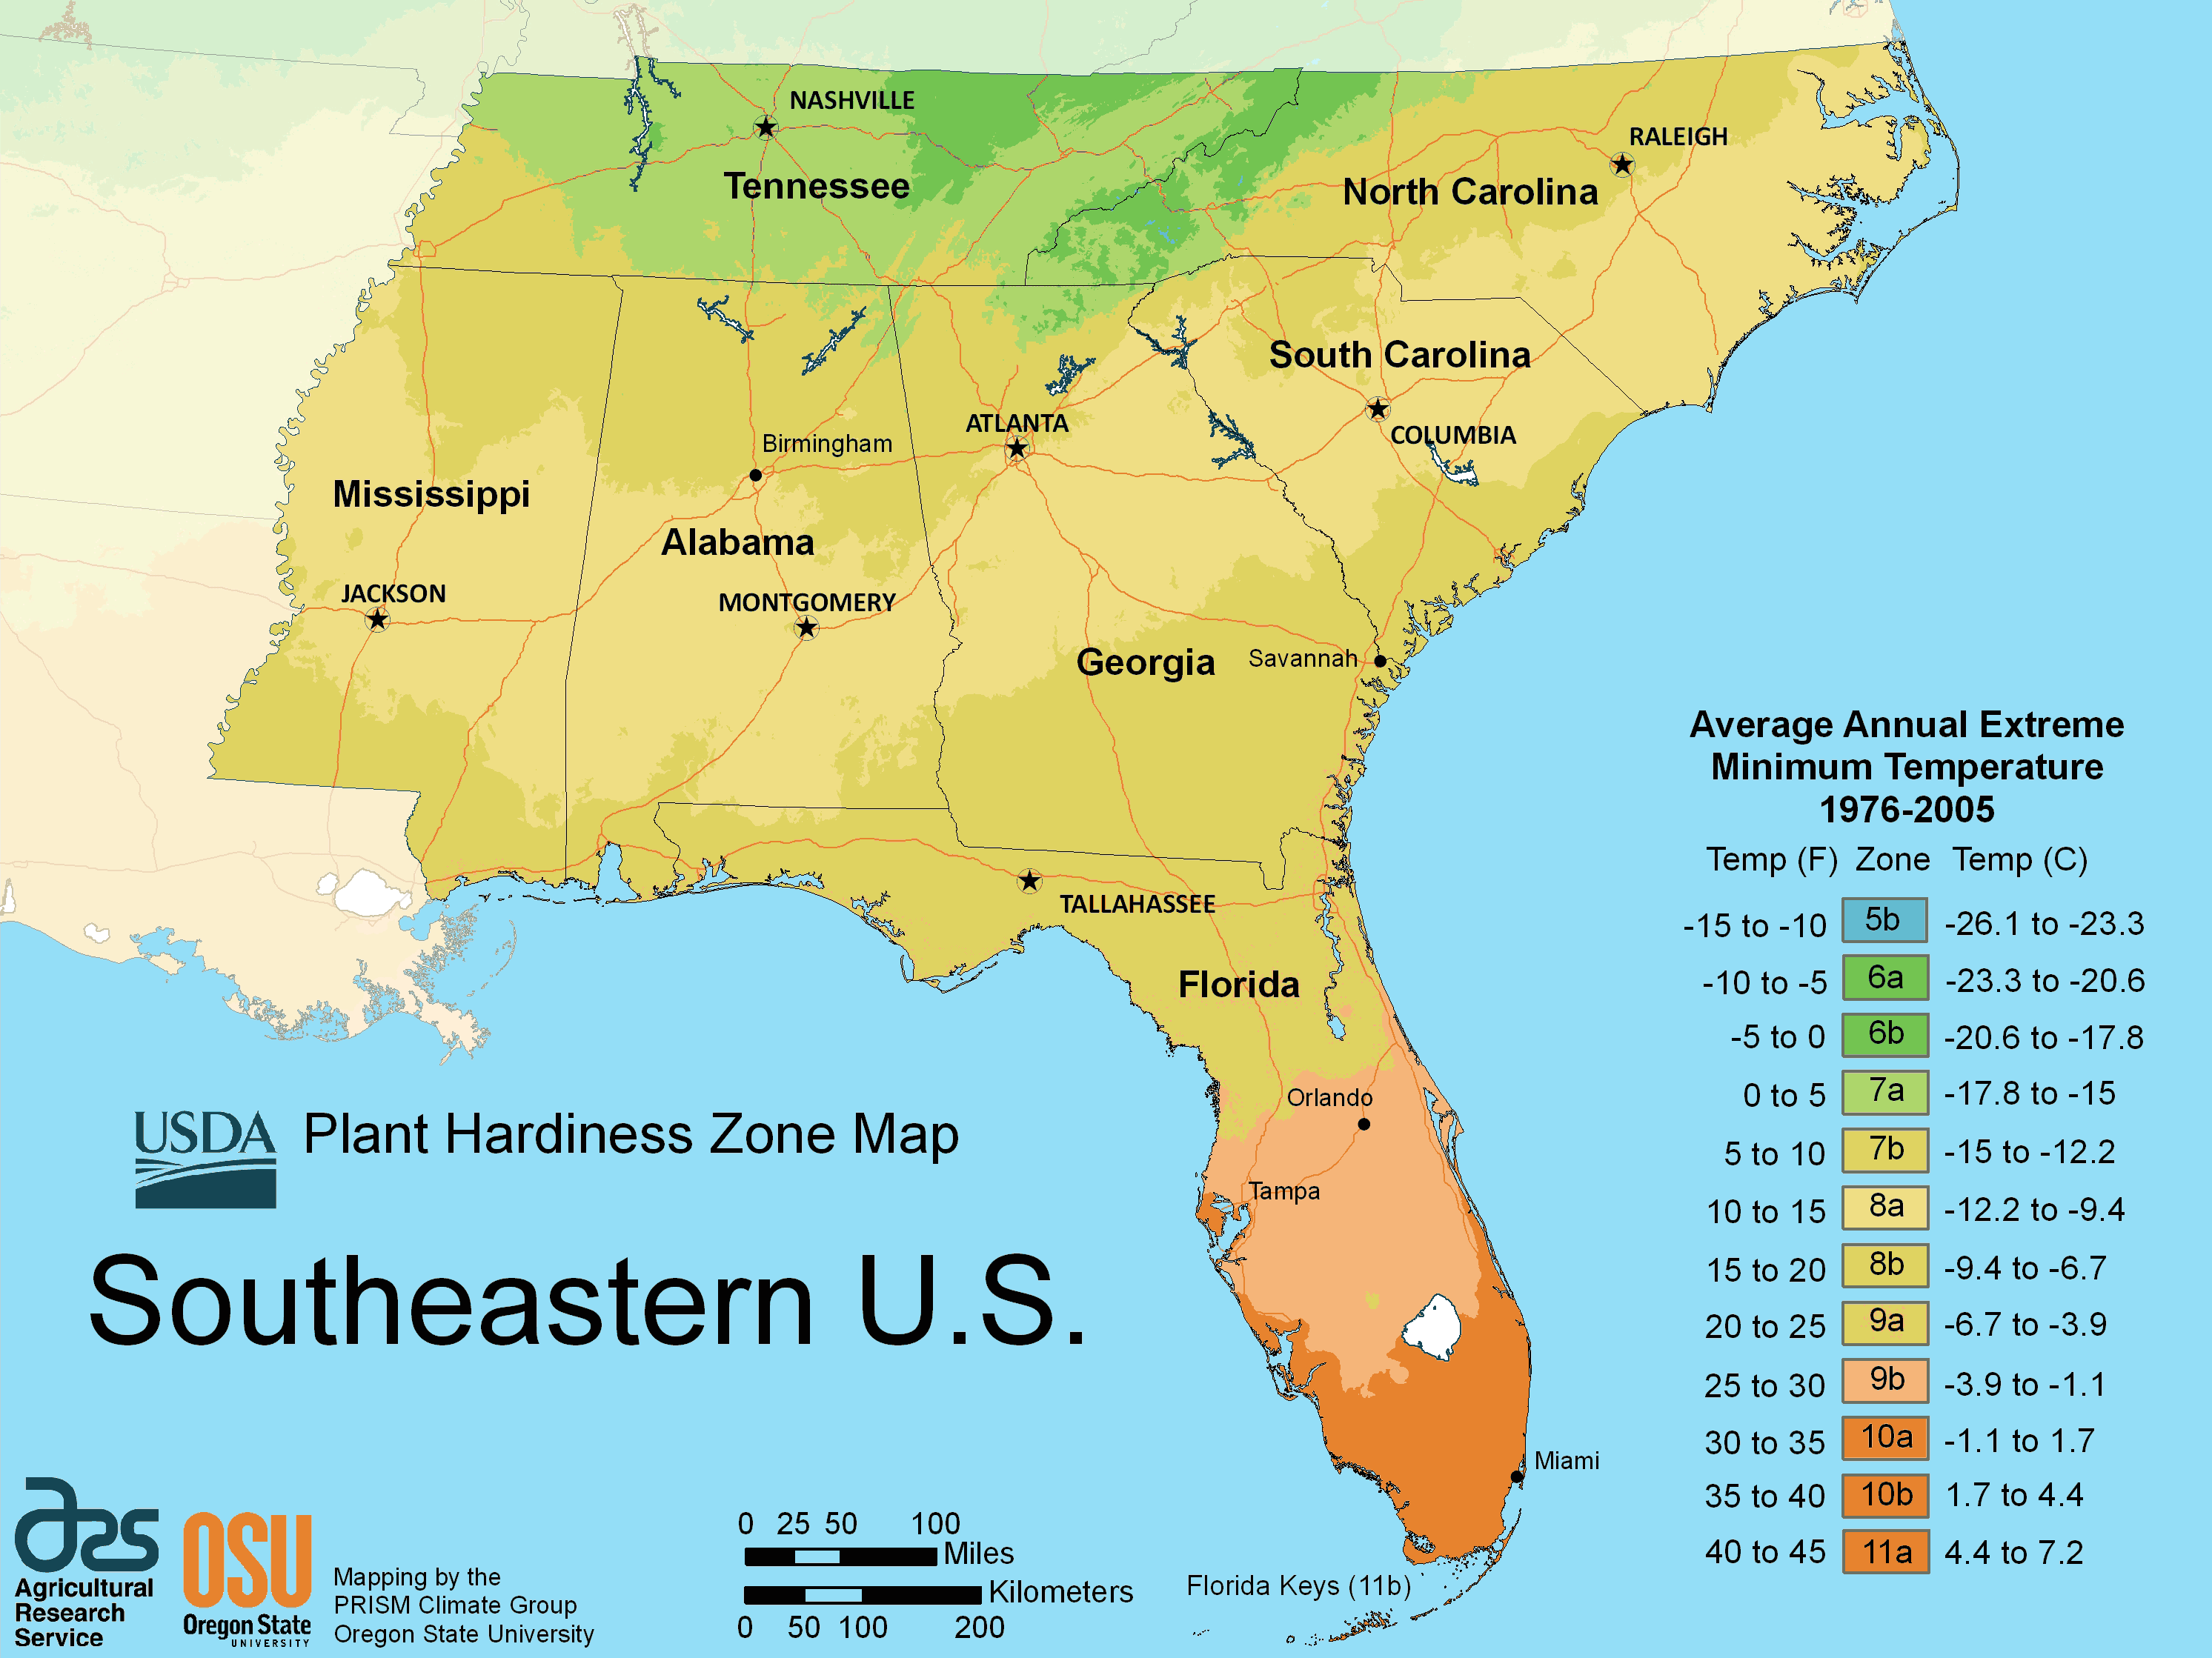 South East Map South East Us Plant Hardiness Zone Map • Mapsof.net